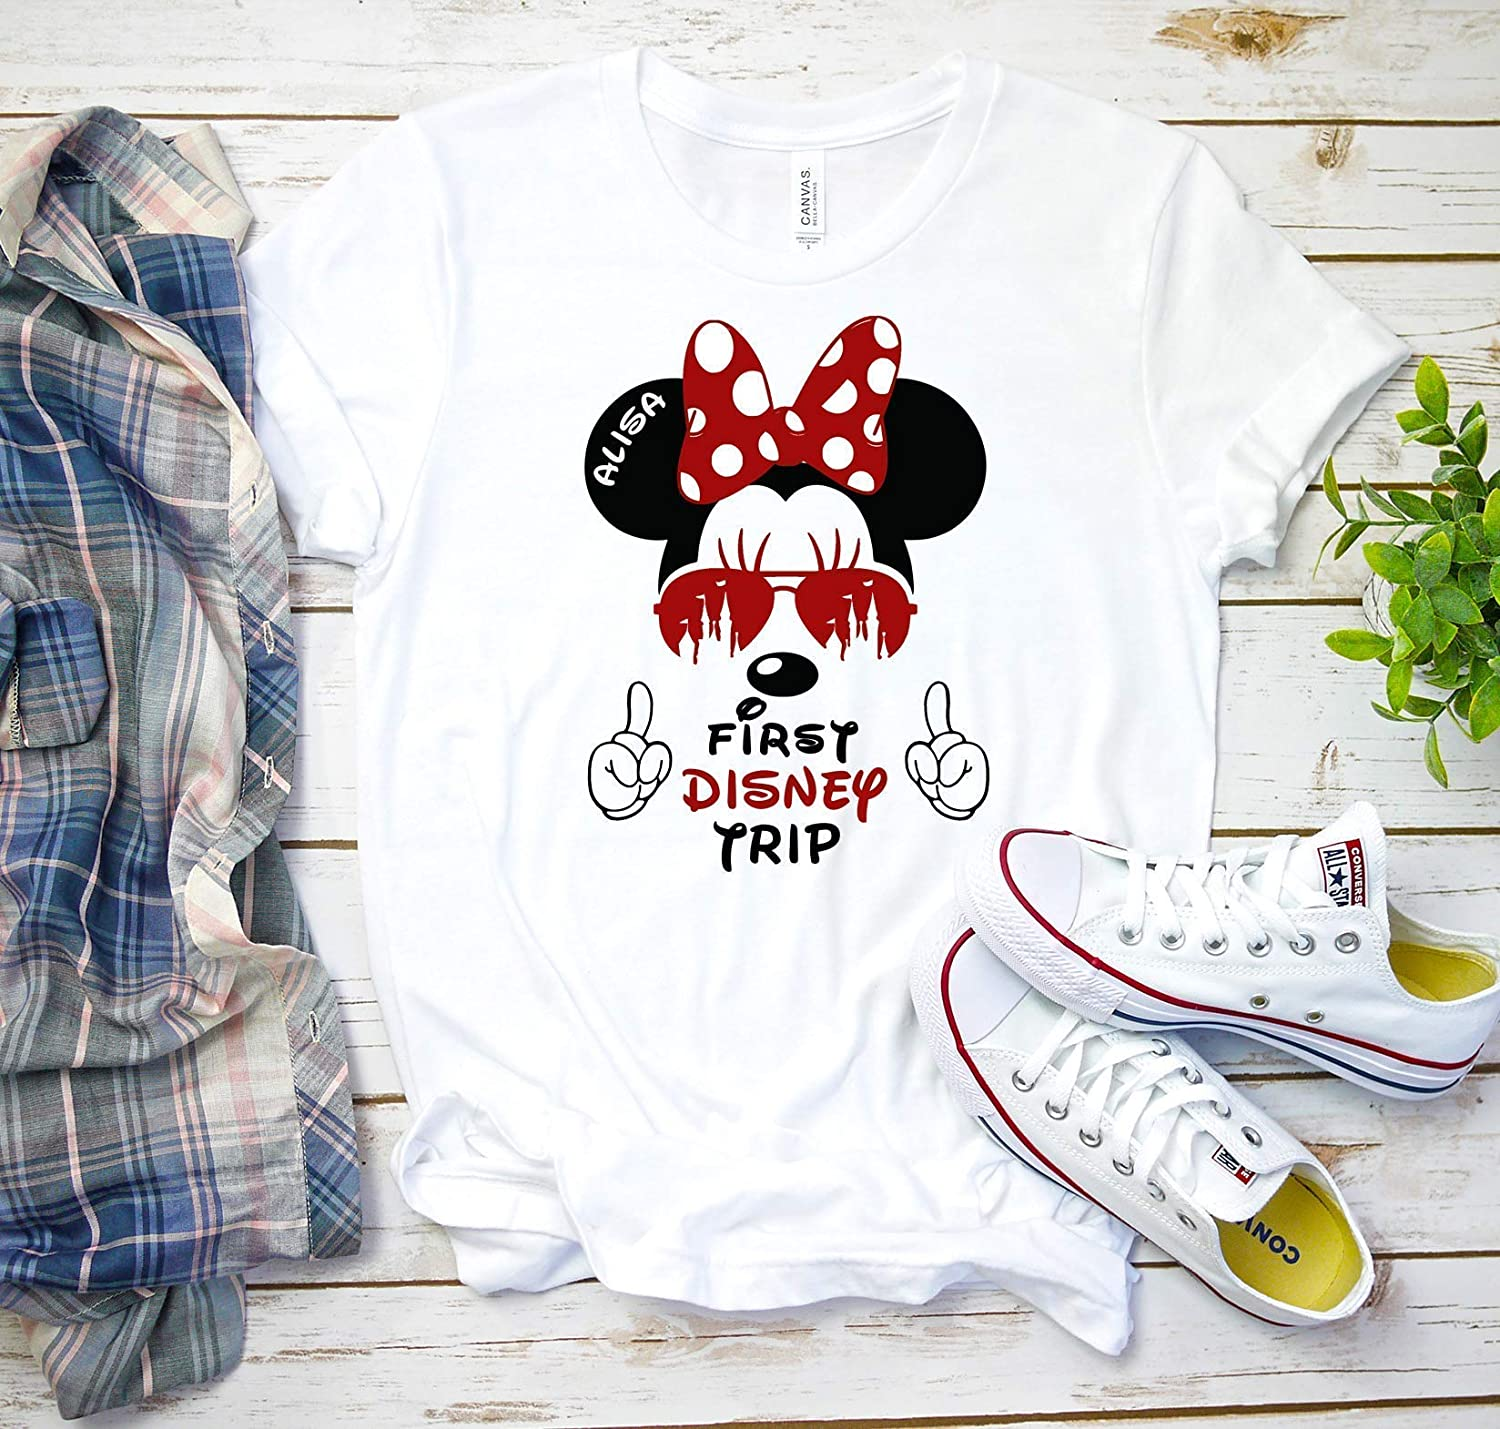 Disney Vacation Minnie Mickey Mouse Birthday Matching T-shirts Party Family Kid